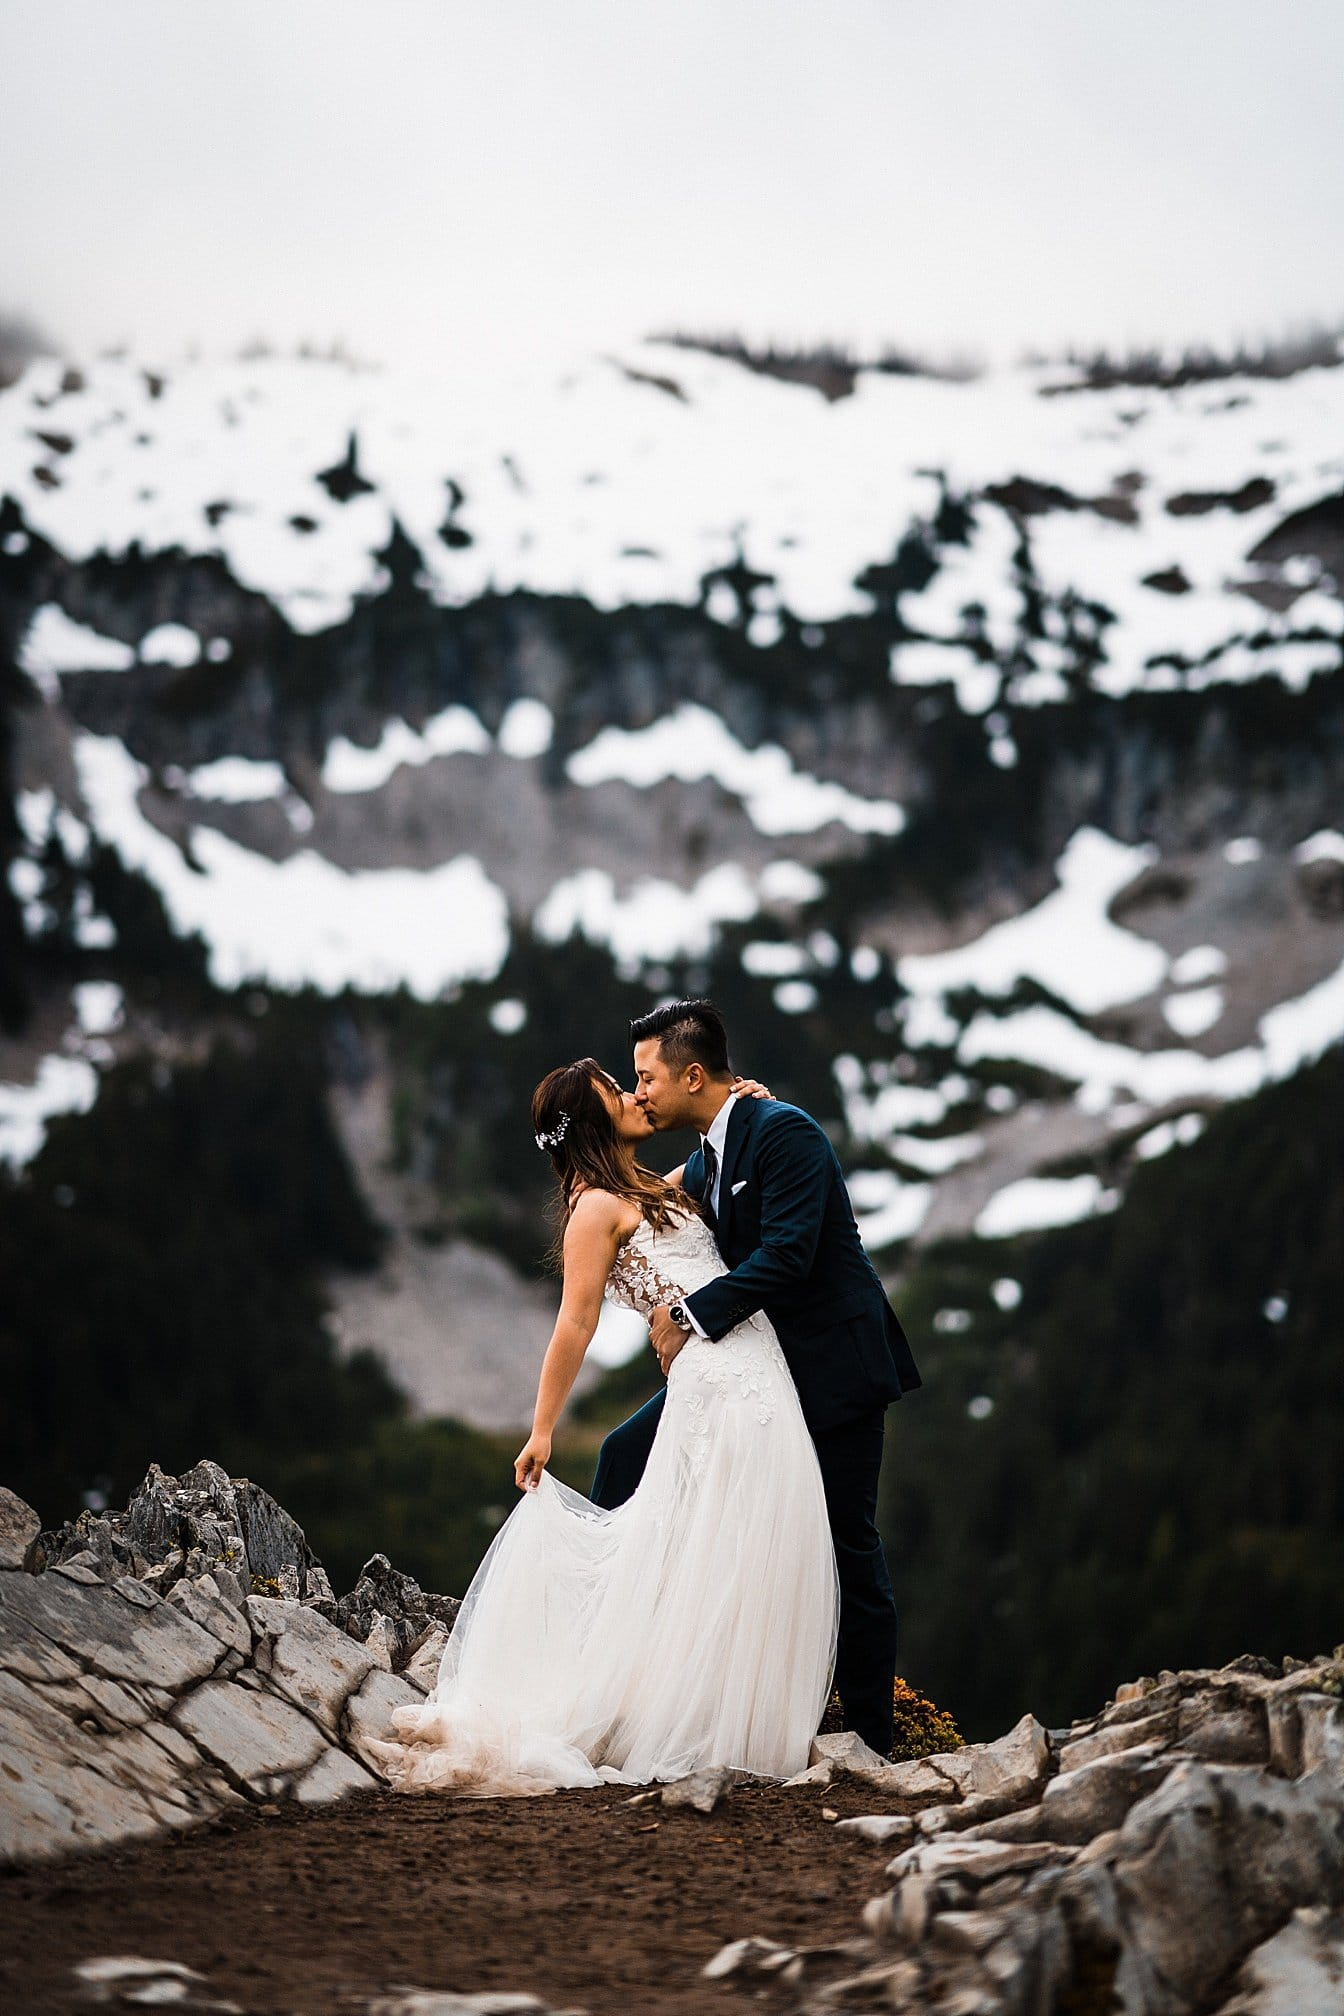 misty-mountain-elopement-mount-rainier_0020.jpg